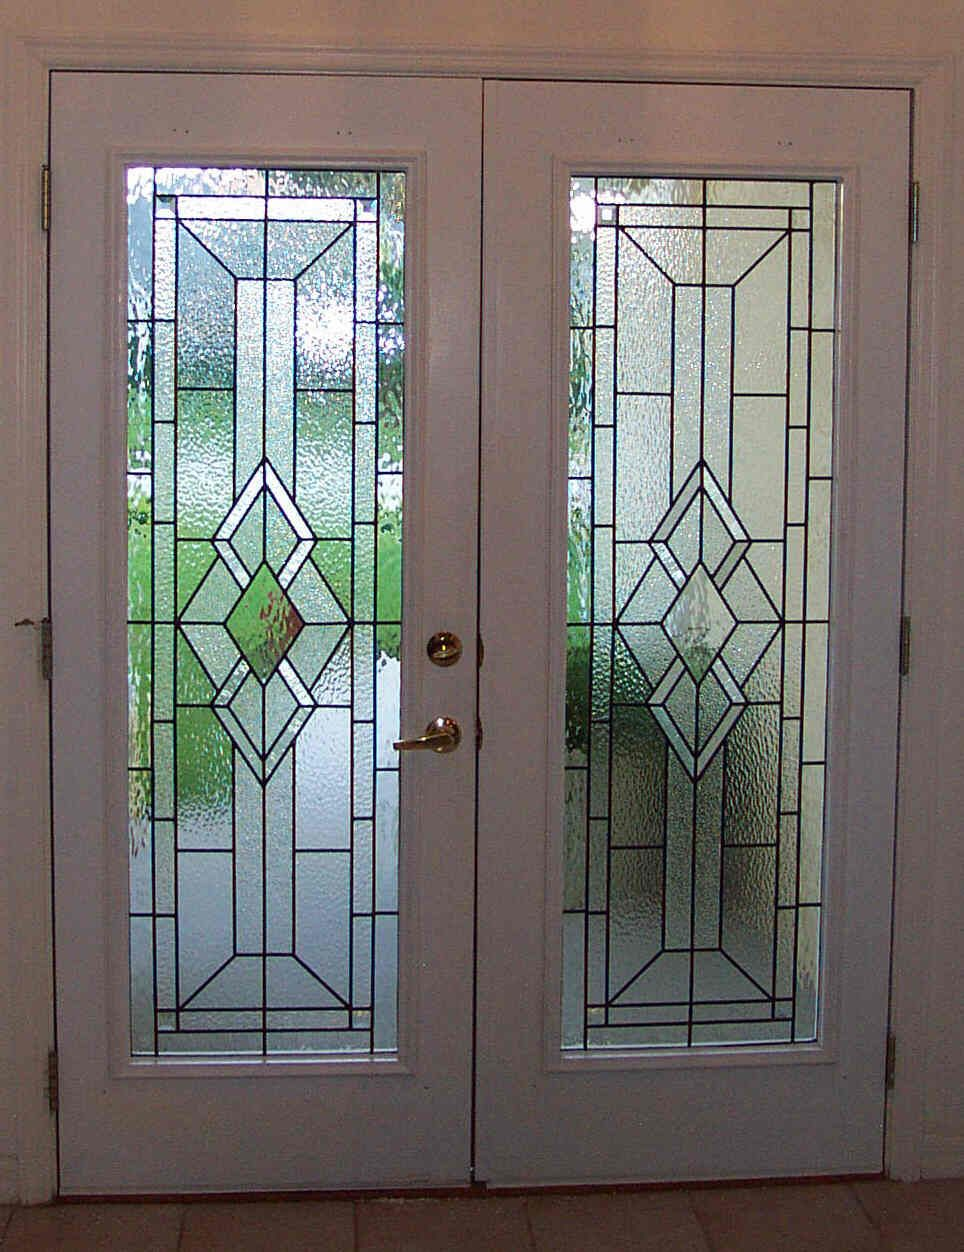 Custom Glass For Front Entry Doors Made By Designer Art Glass Daytona Beach Fl Stained Glass Door Glass Doors Interior Entry Doors With Glass